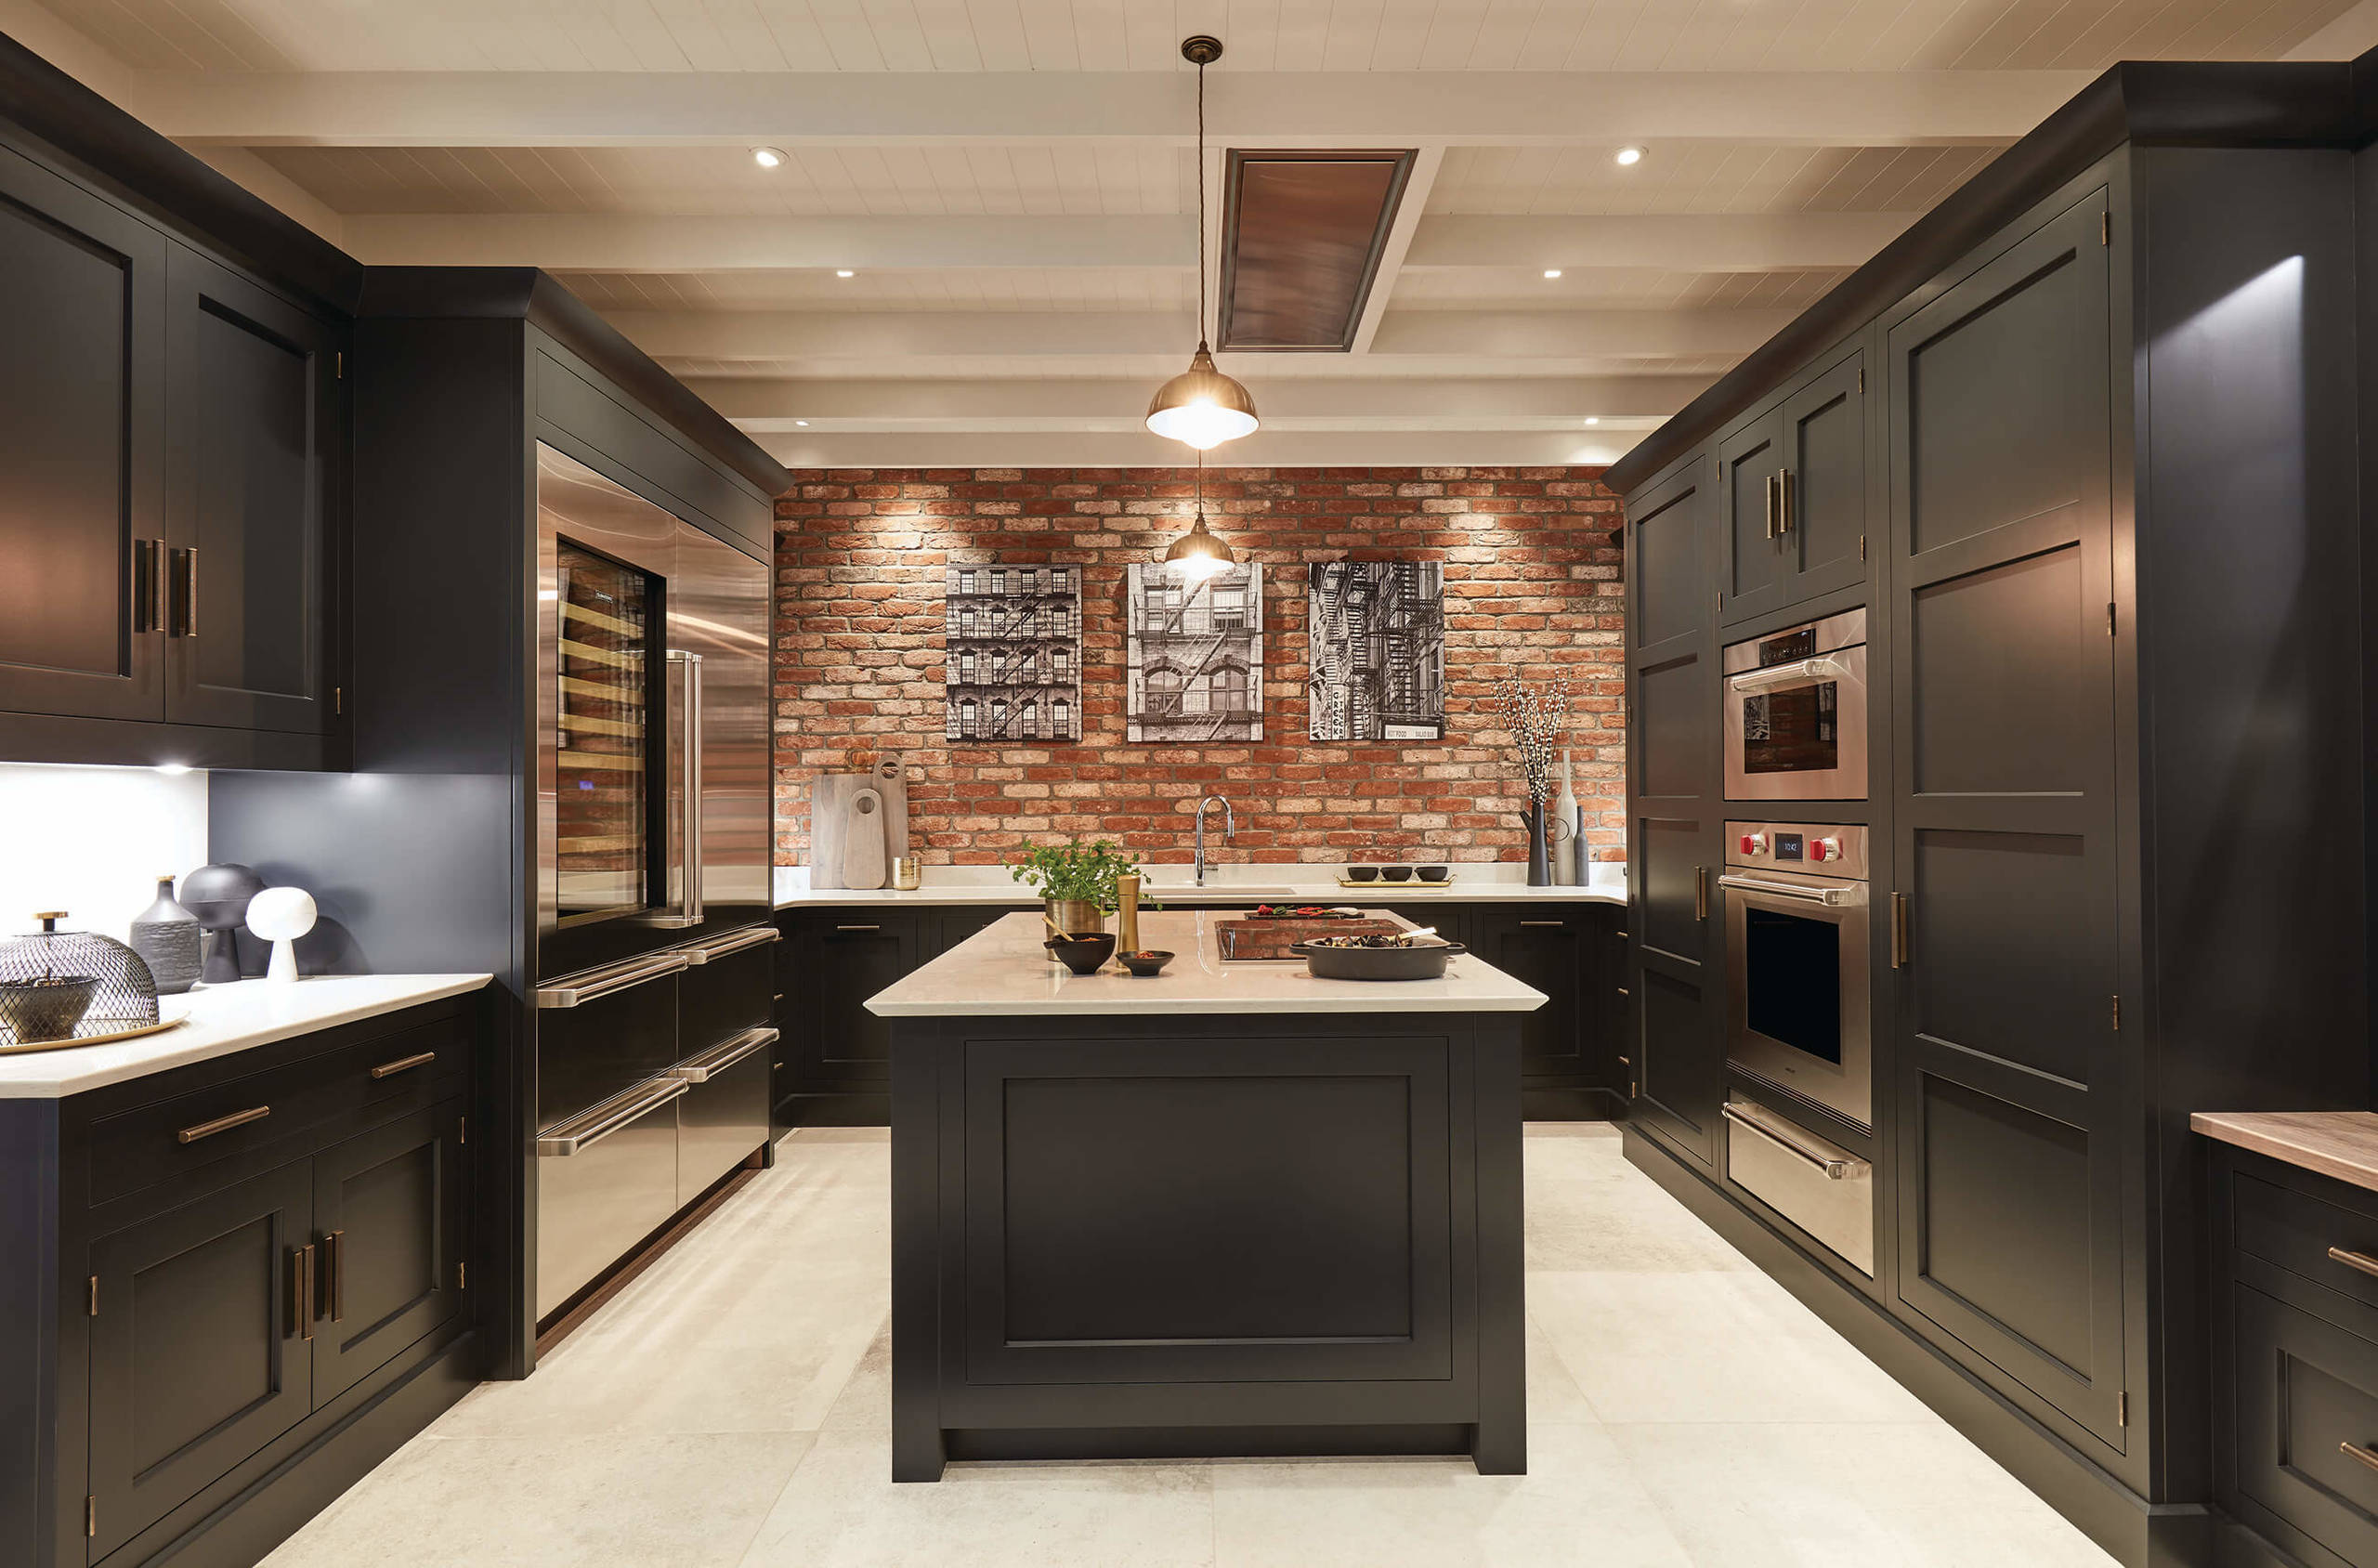 75 Beautiful Kitchen With Black Cabinets And Brick Backsplash Pictures Ideas November 2020 Houzz